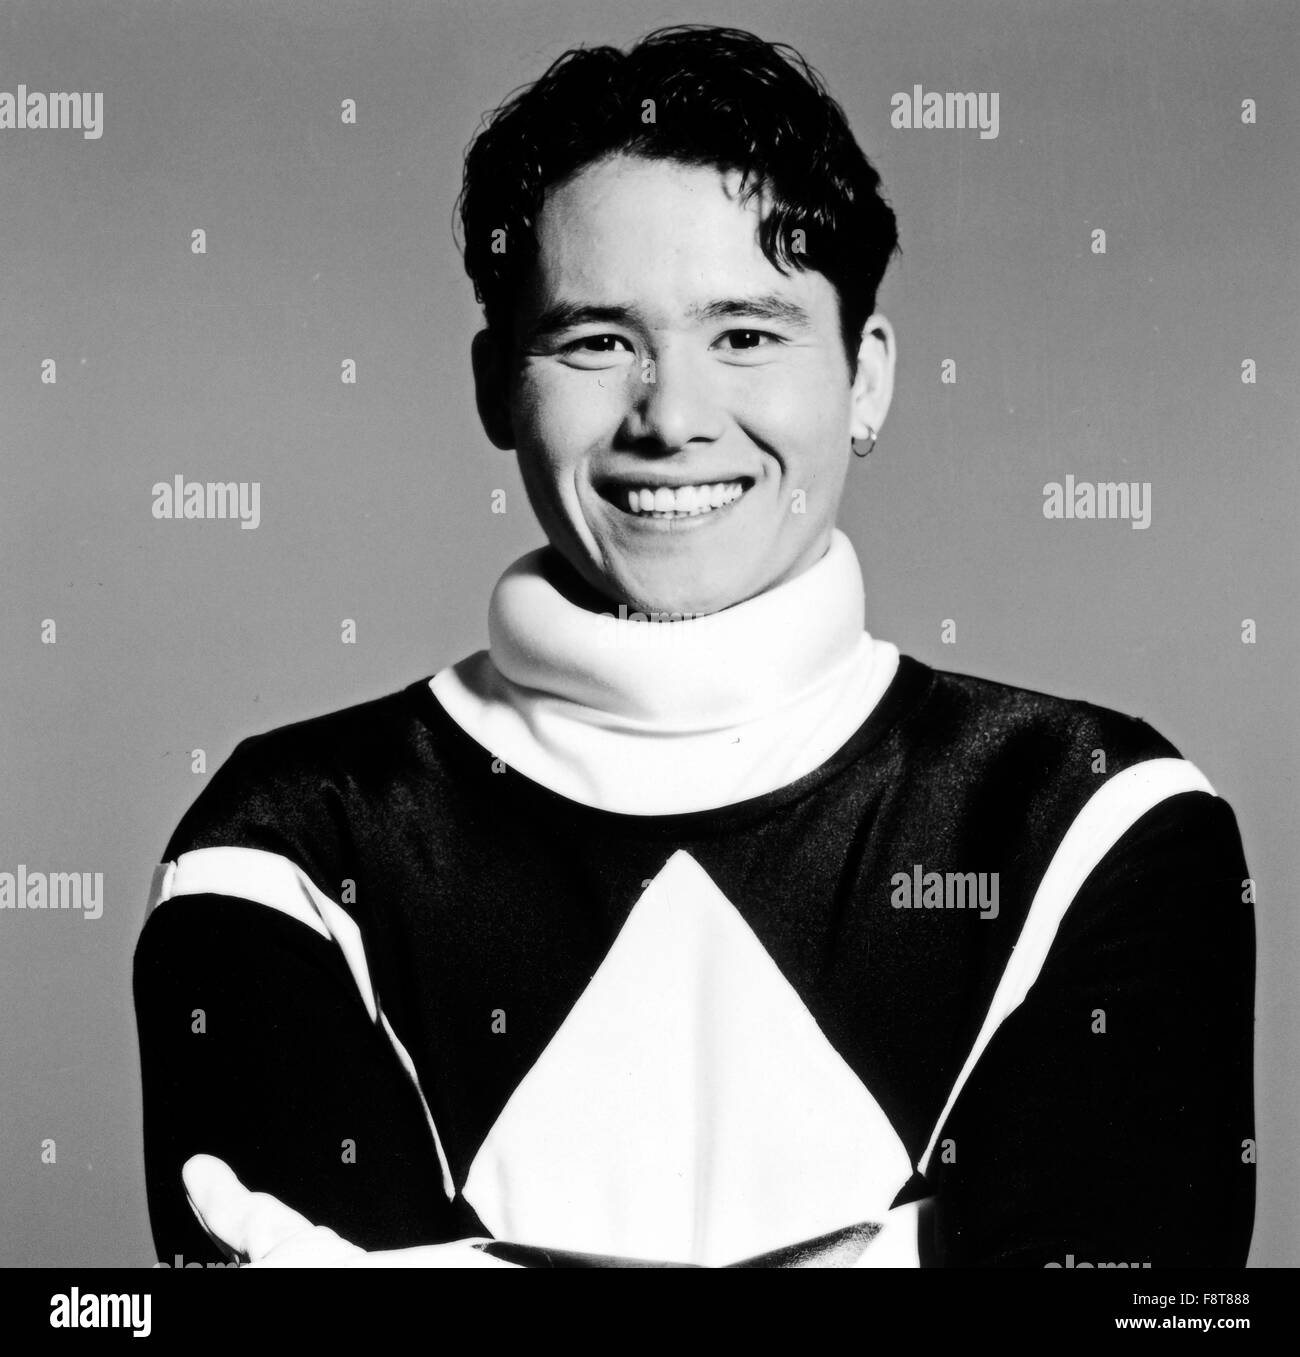 Mighty Morphin Power Rangers, Actionserie, USA 1993-1996 ... Johnny Yong Bosch Black Ranger